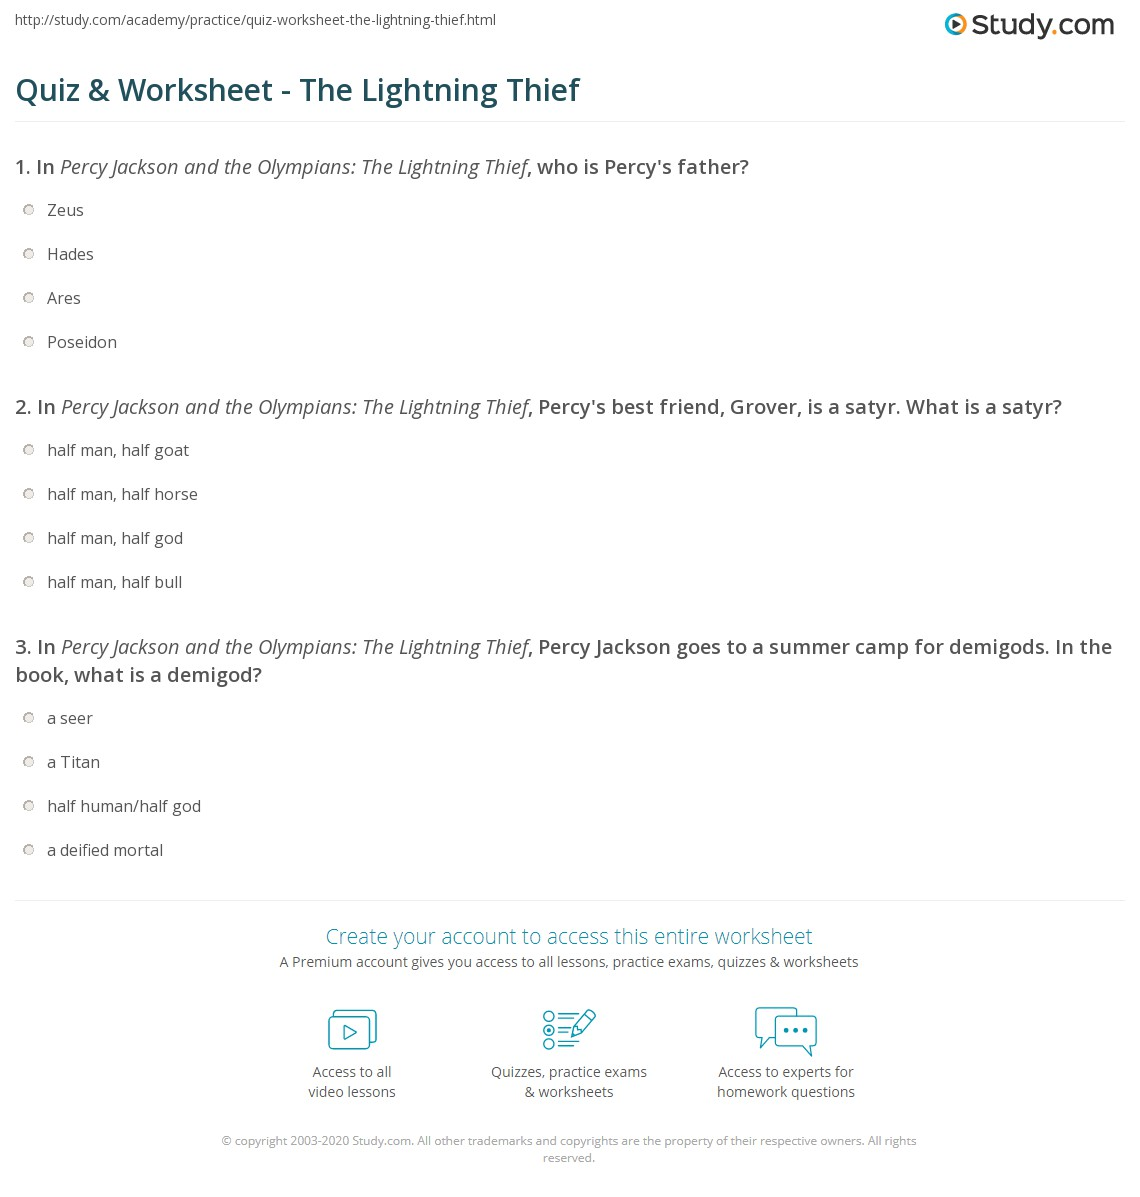 17 Best images about The lightning thief on Pinterest | The ...